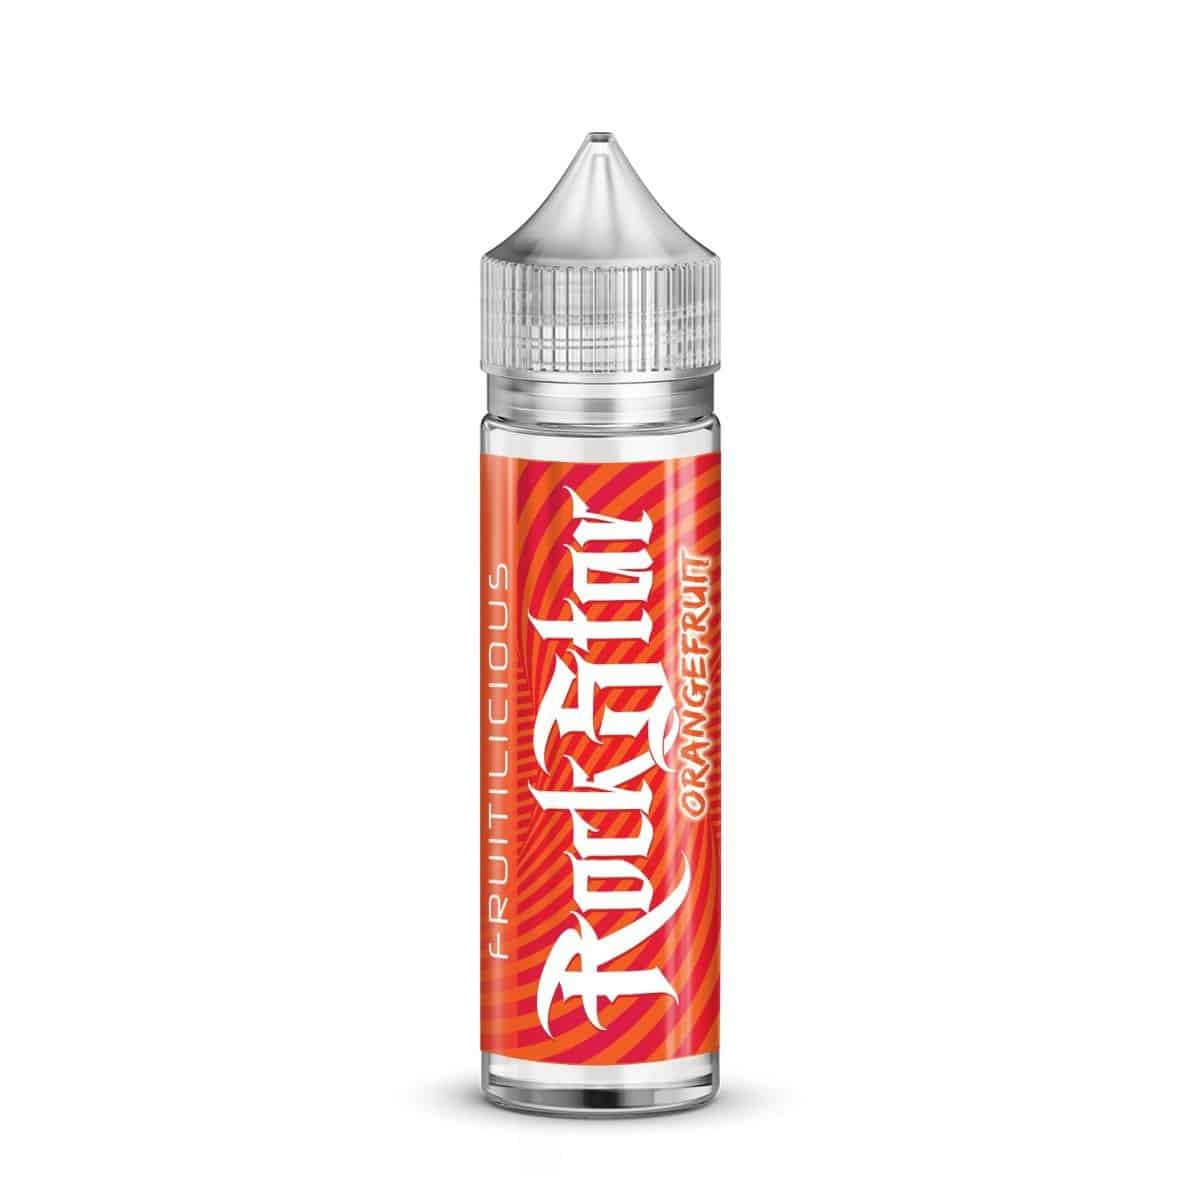 Orangefruit Rockstar Fruitilicious Shortfill 50ml